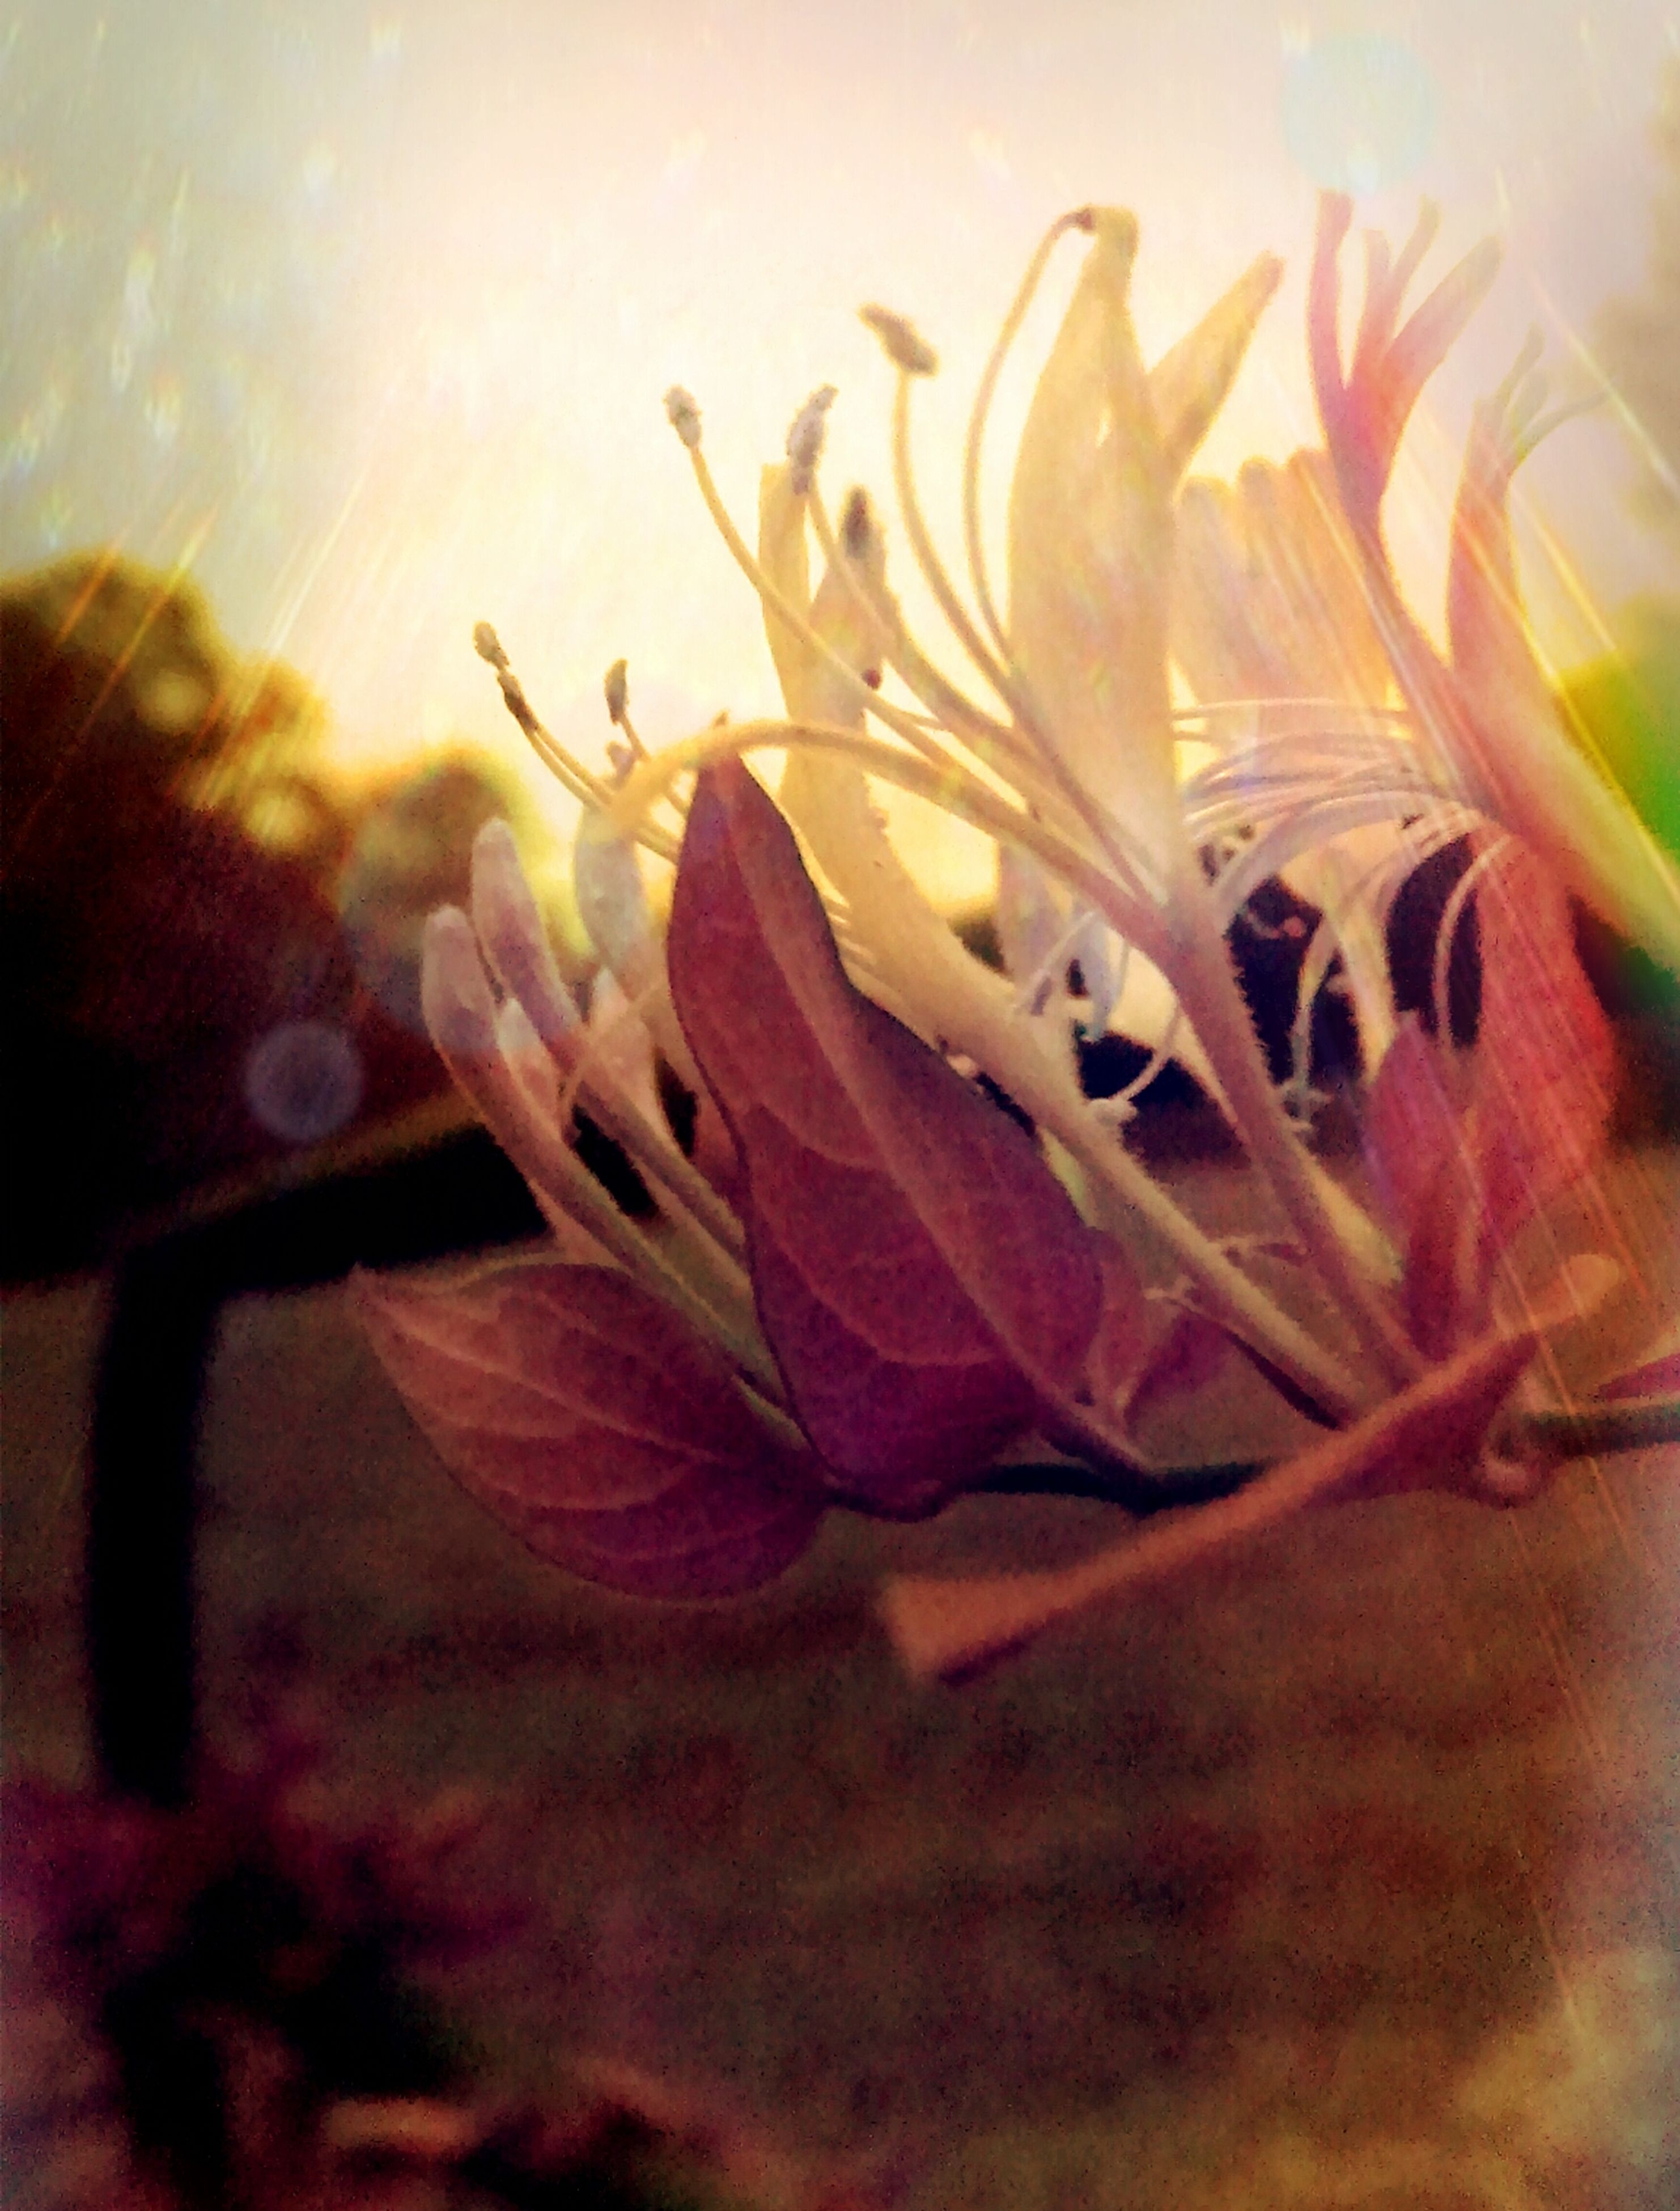 flower, close-up, fragility, petal, plant, growth, flower head, freshness, beauty in nature, nature, selective focus, focus on foreground, single flower, stem, no people, orange color, outdoors, auto post production filter, extreme close-up